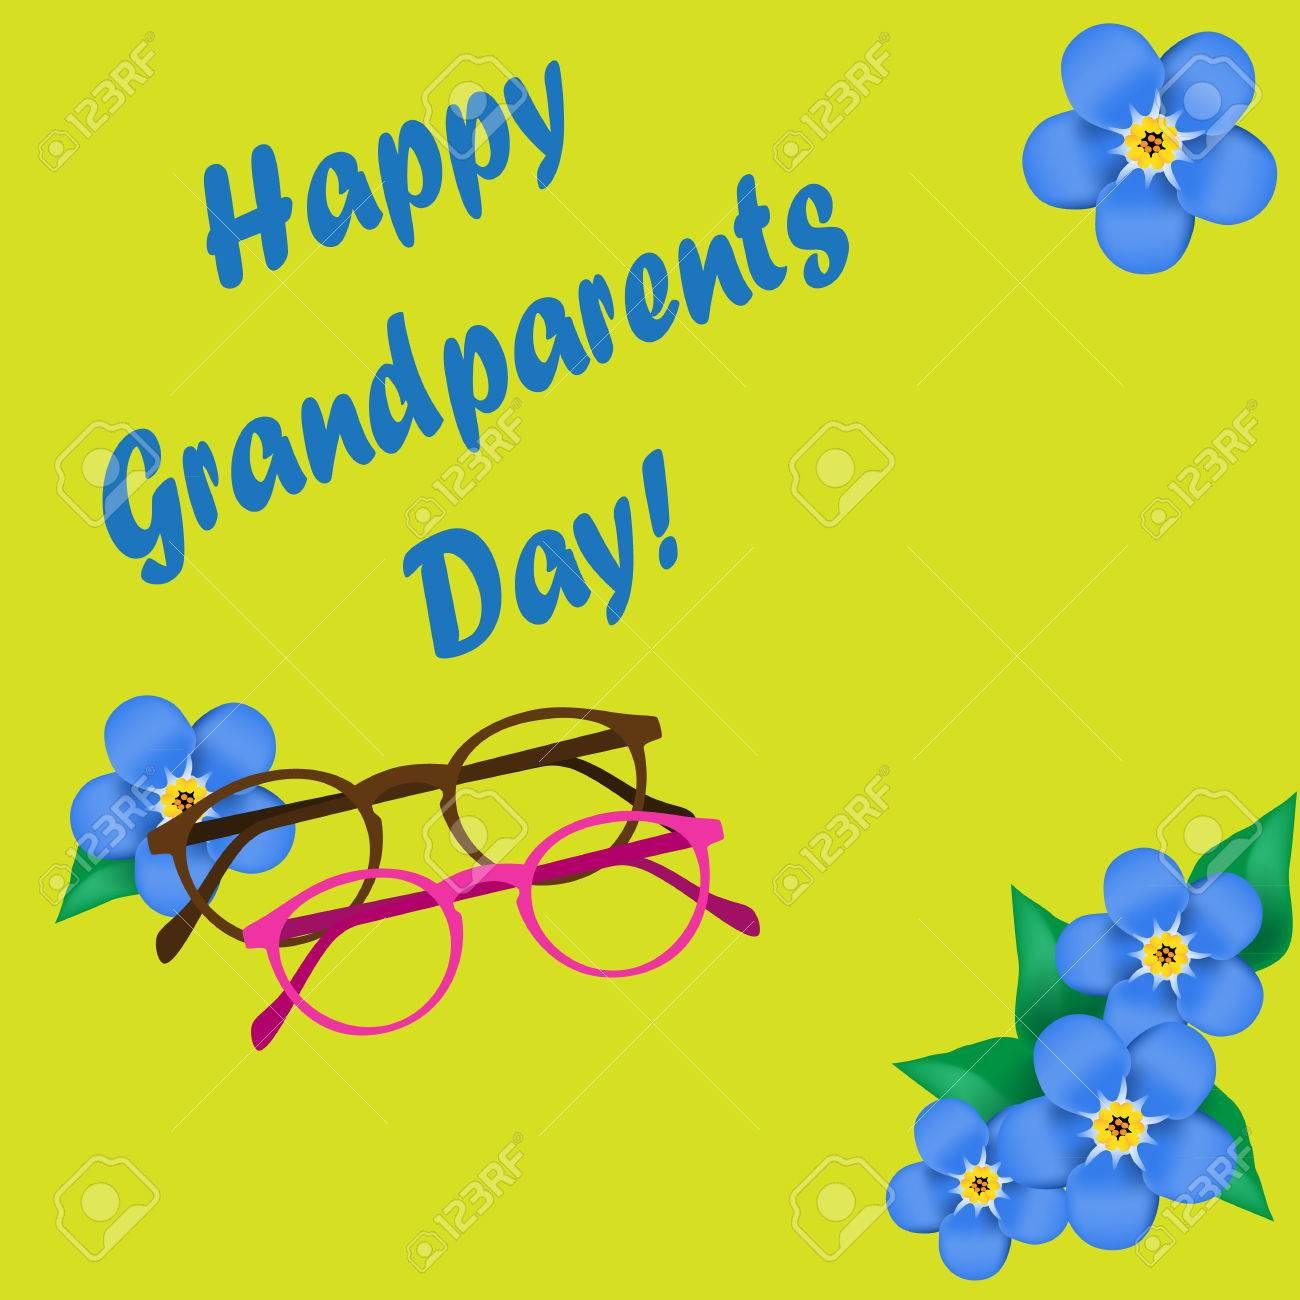 Grandparents day greeting card forget me not googles glasses grandparents day greeting card forget me not googles glasses yellow font m4hsunfo